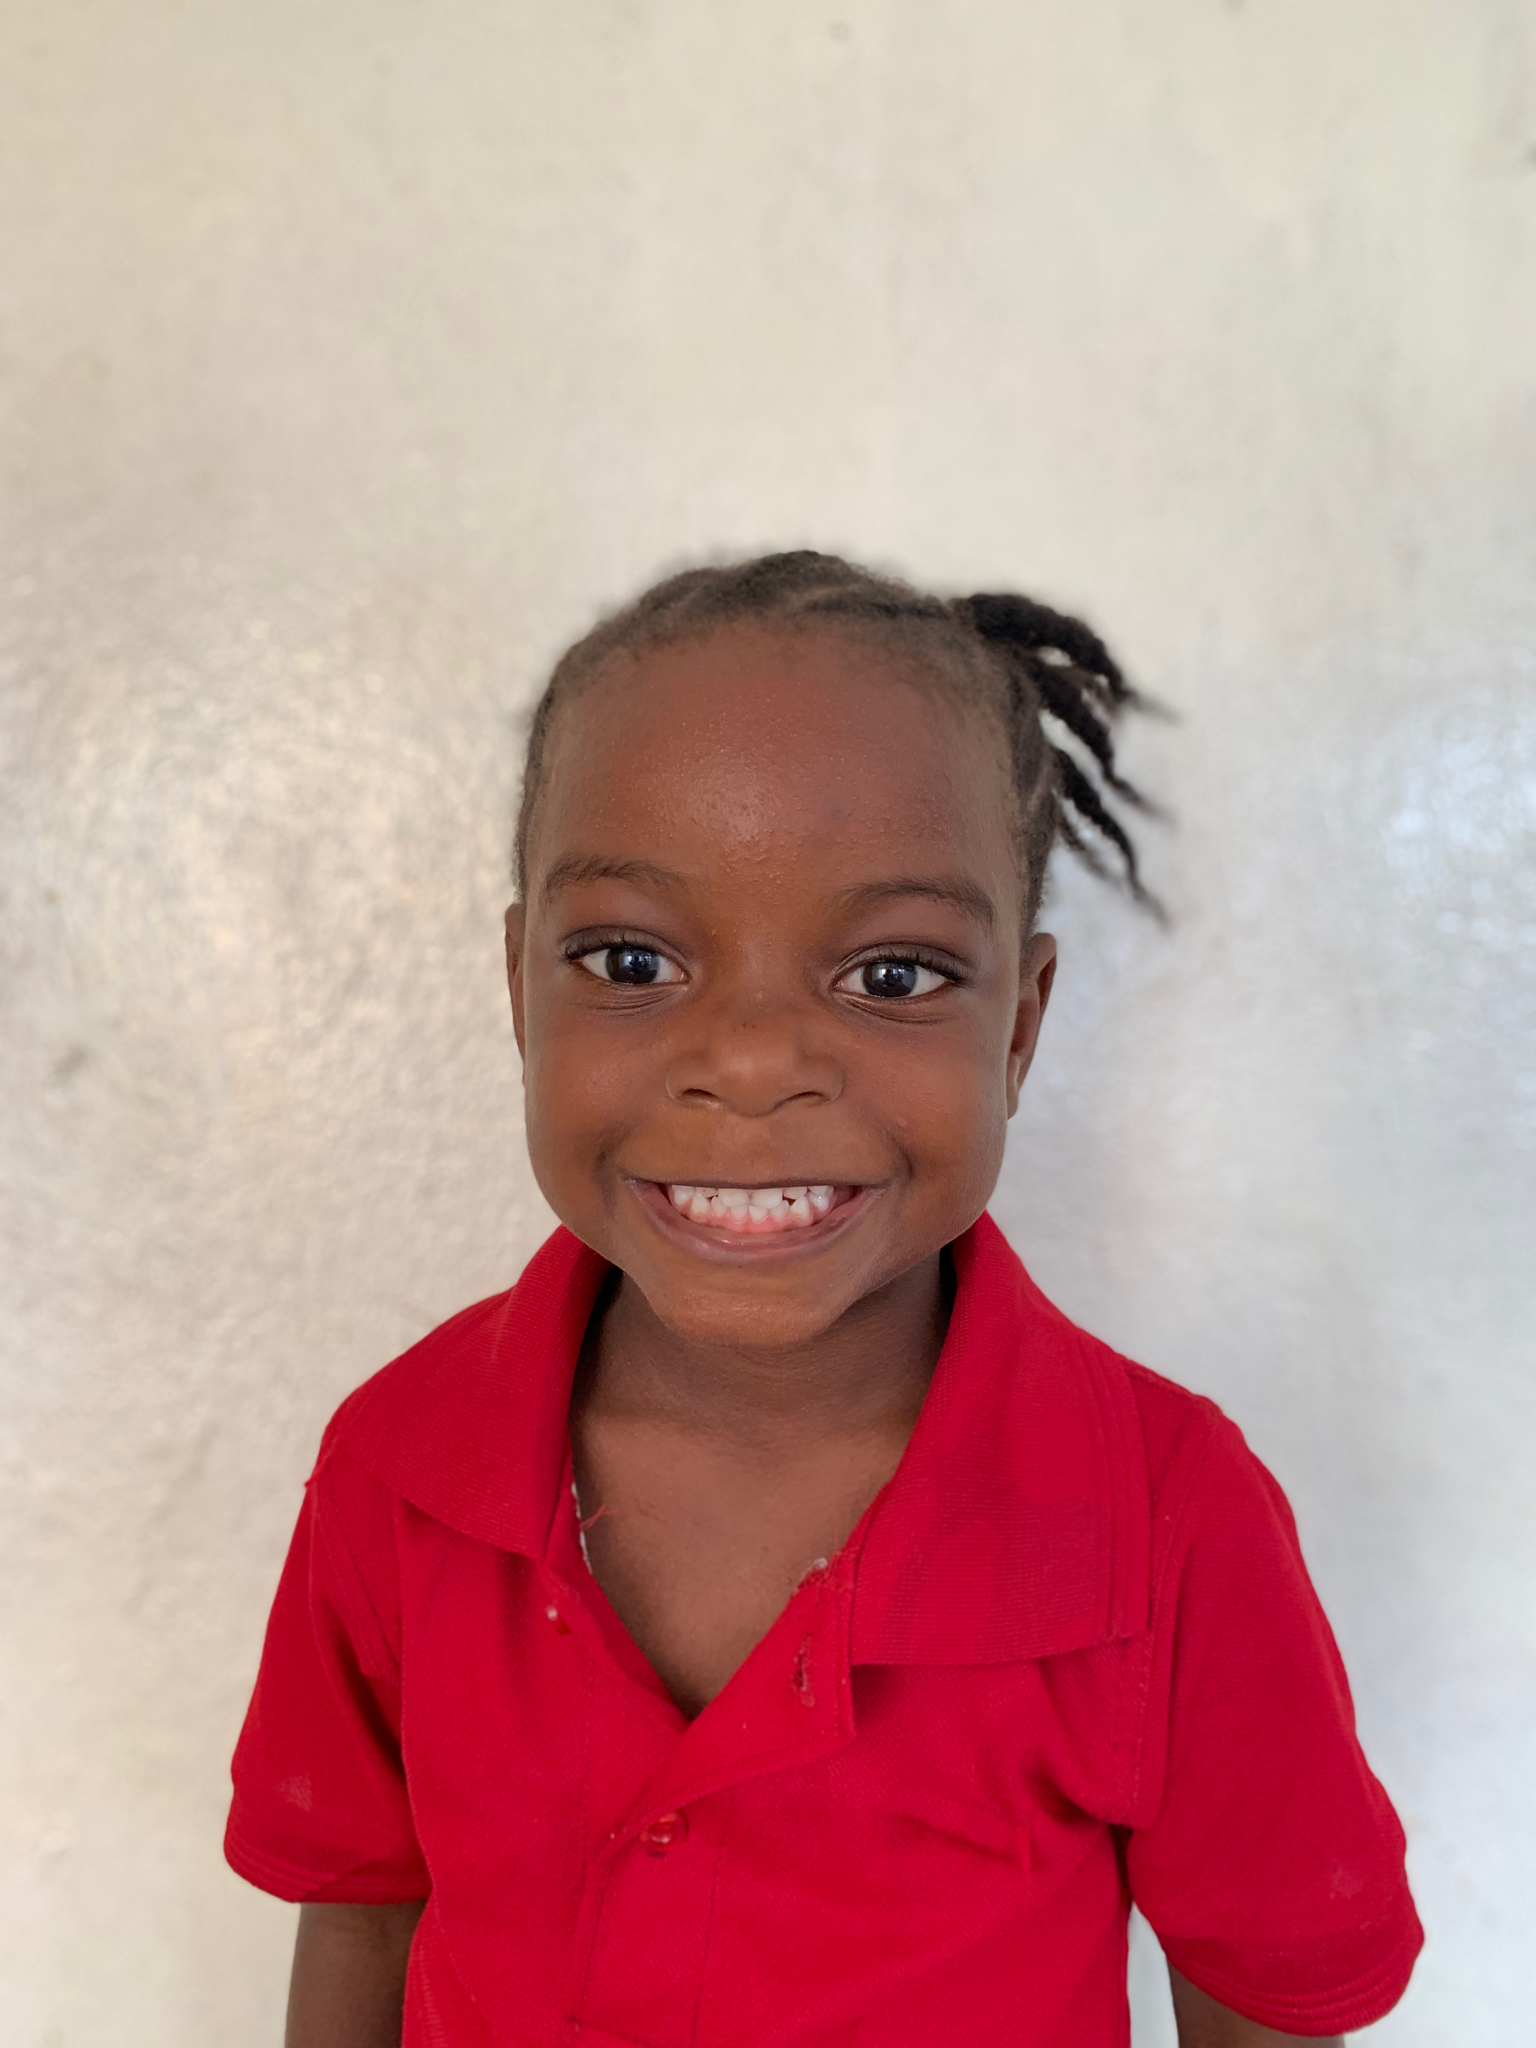 Hello, my name is Mara Enders. - Mara is a 4-year-old girl.Mara lives with Sam Enders, since her parents died of Ebola; and she loves alligators, puzzles, and the color purple.